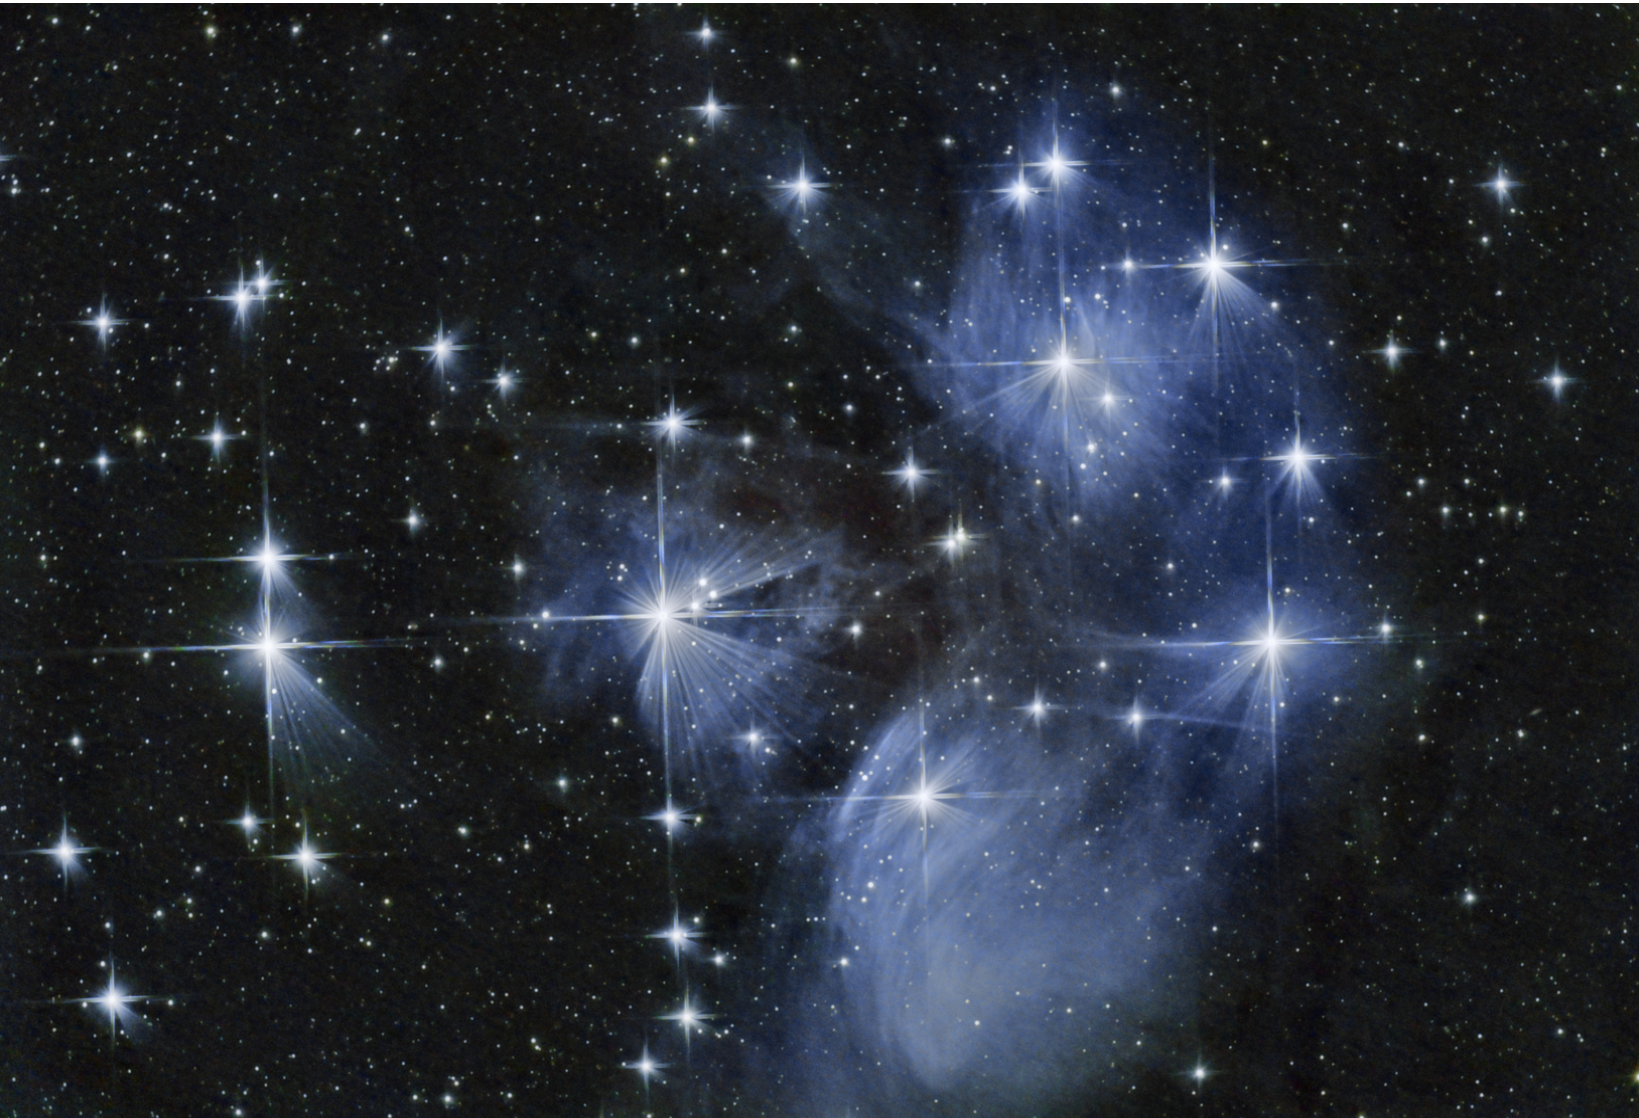 Star Cluster Pleiades, photo taken by Ethan Catalanello